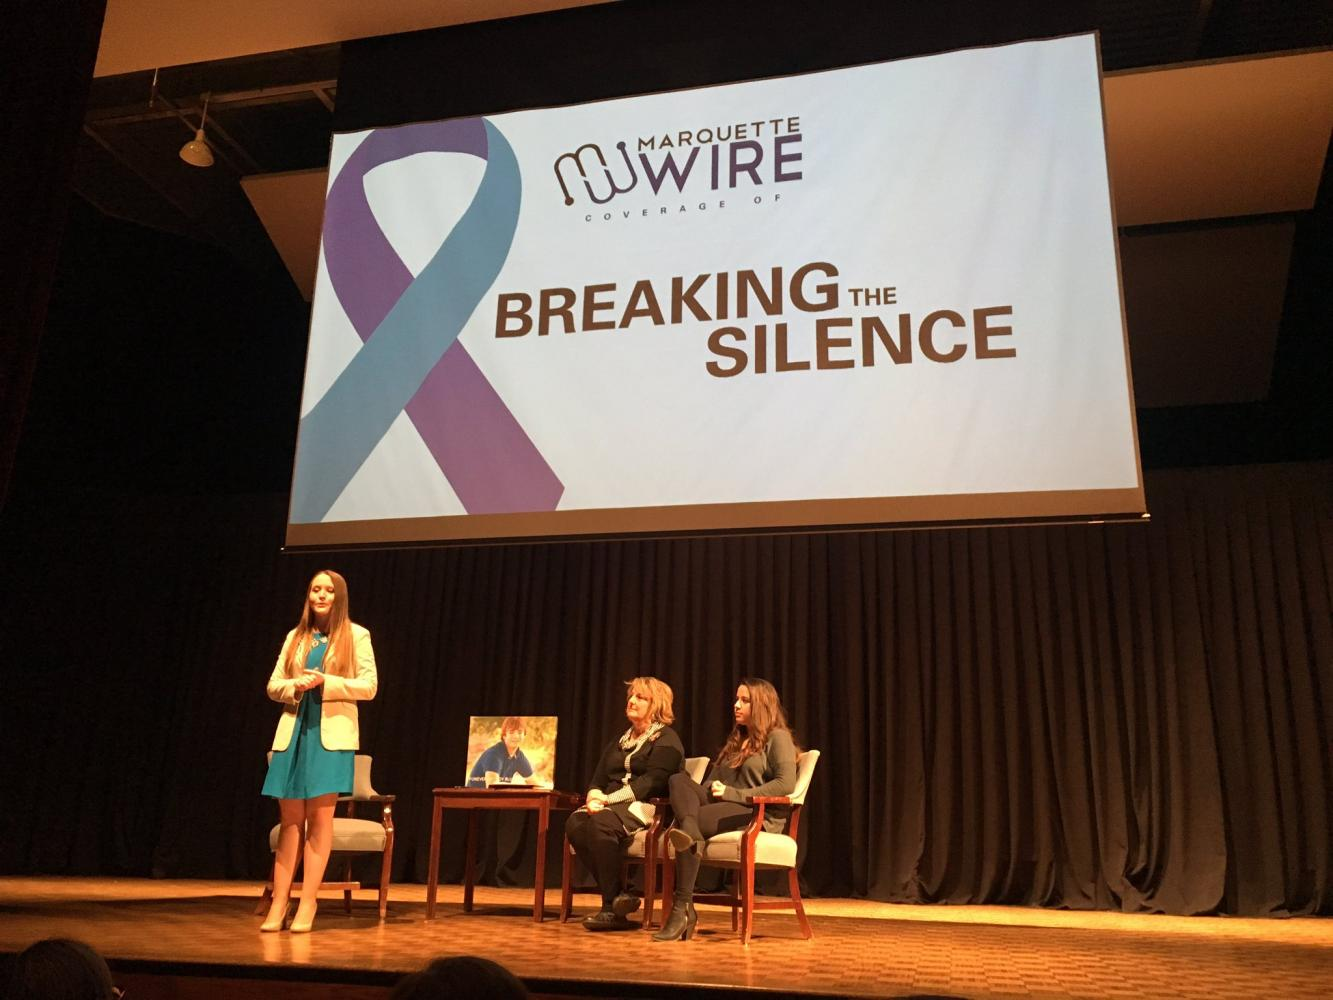 The Marquette Wire's project about college-age suicide, Breaking the Silence, concluded Wednesday, May 3, with a live television town hall forum. Photo by McKenna Oxenden/mckenna.oxenden@marquette.edu